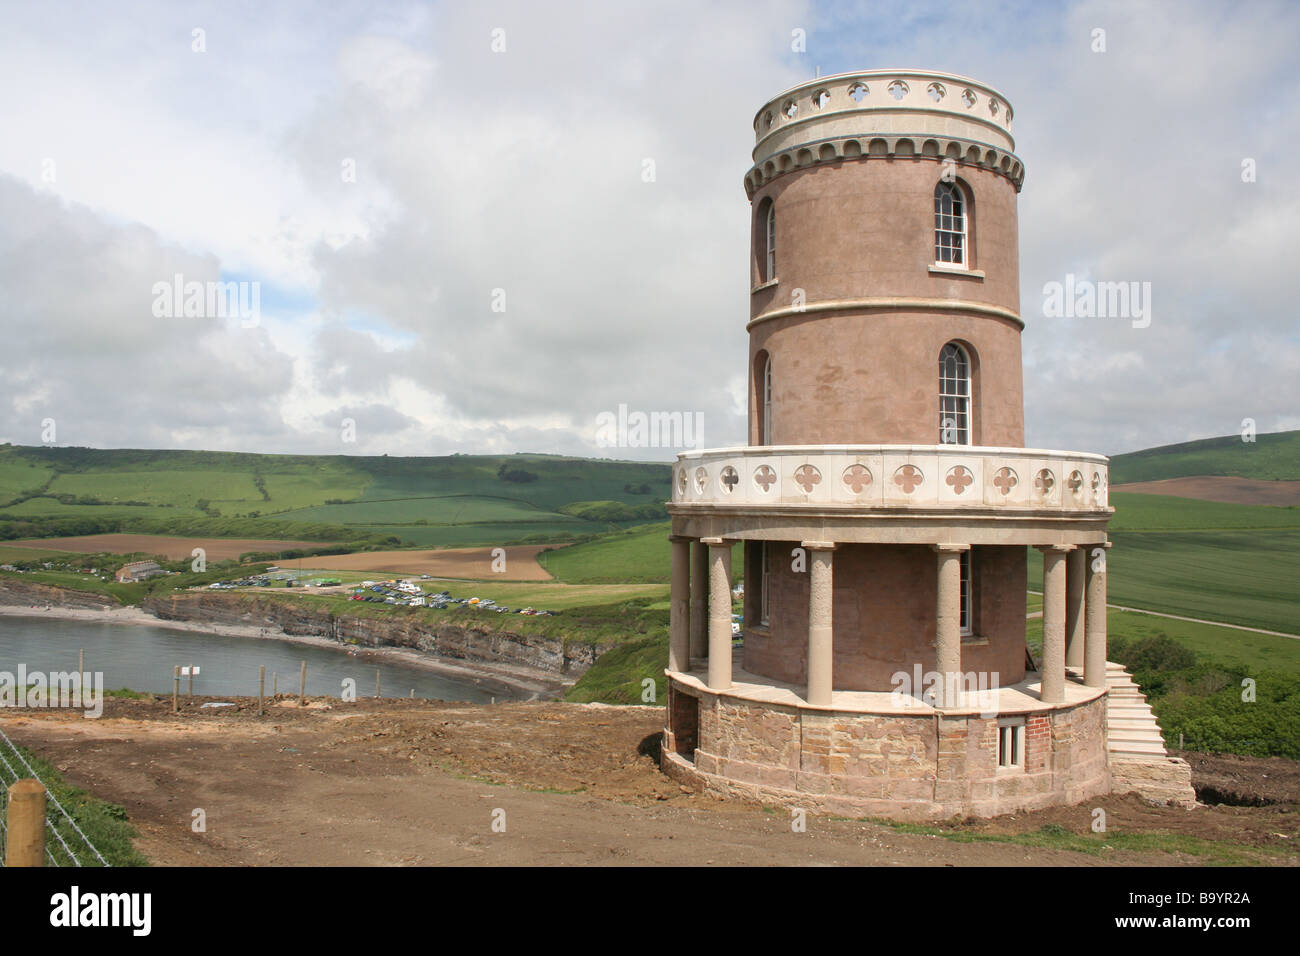 The Newly Renovated Clavell Tower on the Jurassic Coast - Stock Image